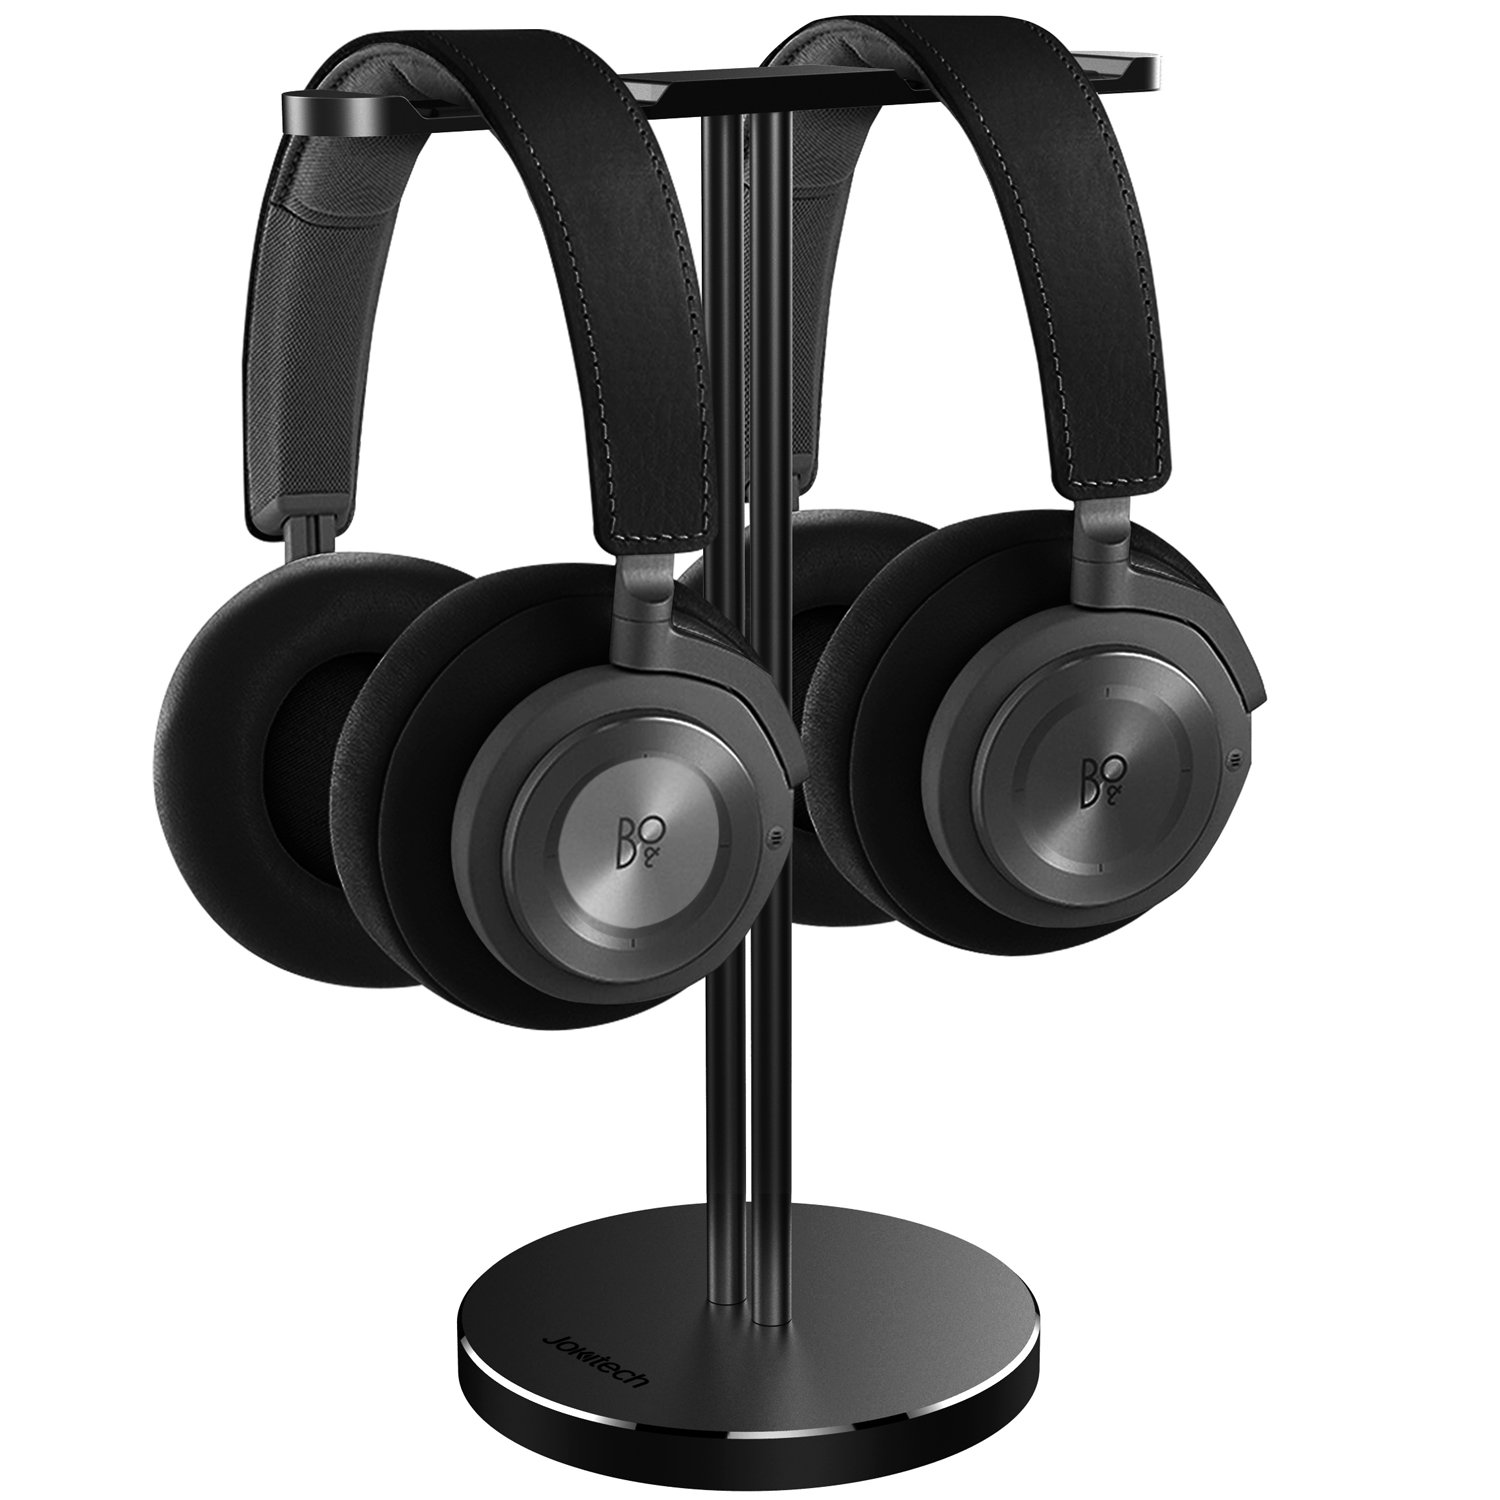 Jokitech Dual Aluminum Headphones Stand Holder - Showcase with Solid Heavy Base and Fits for PS4 Gamer Headsets and All Headphones Black